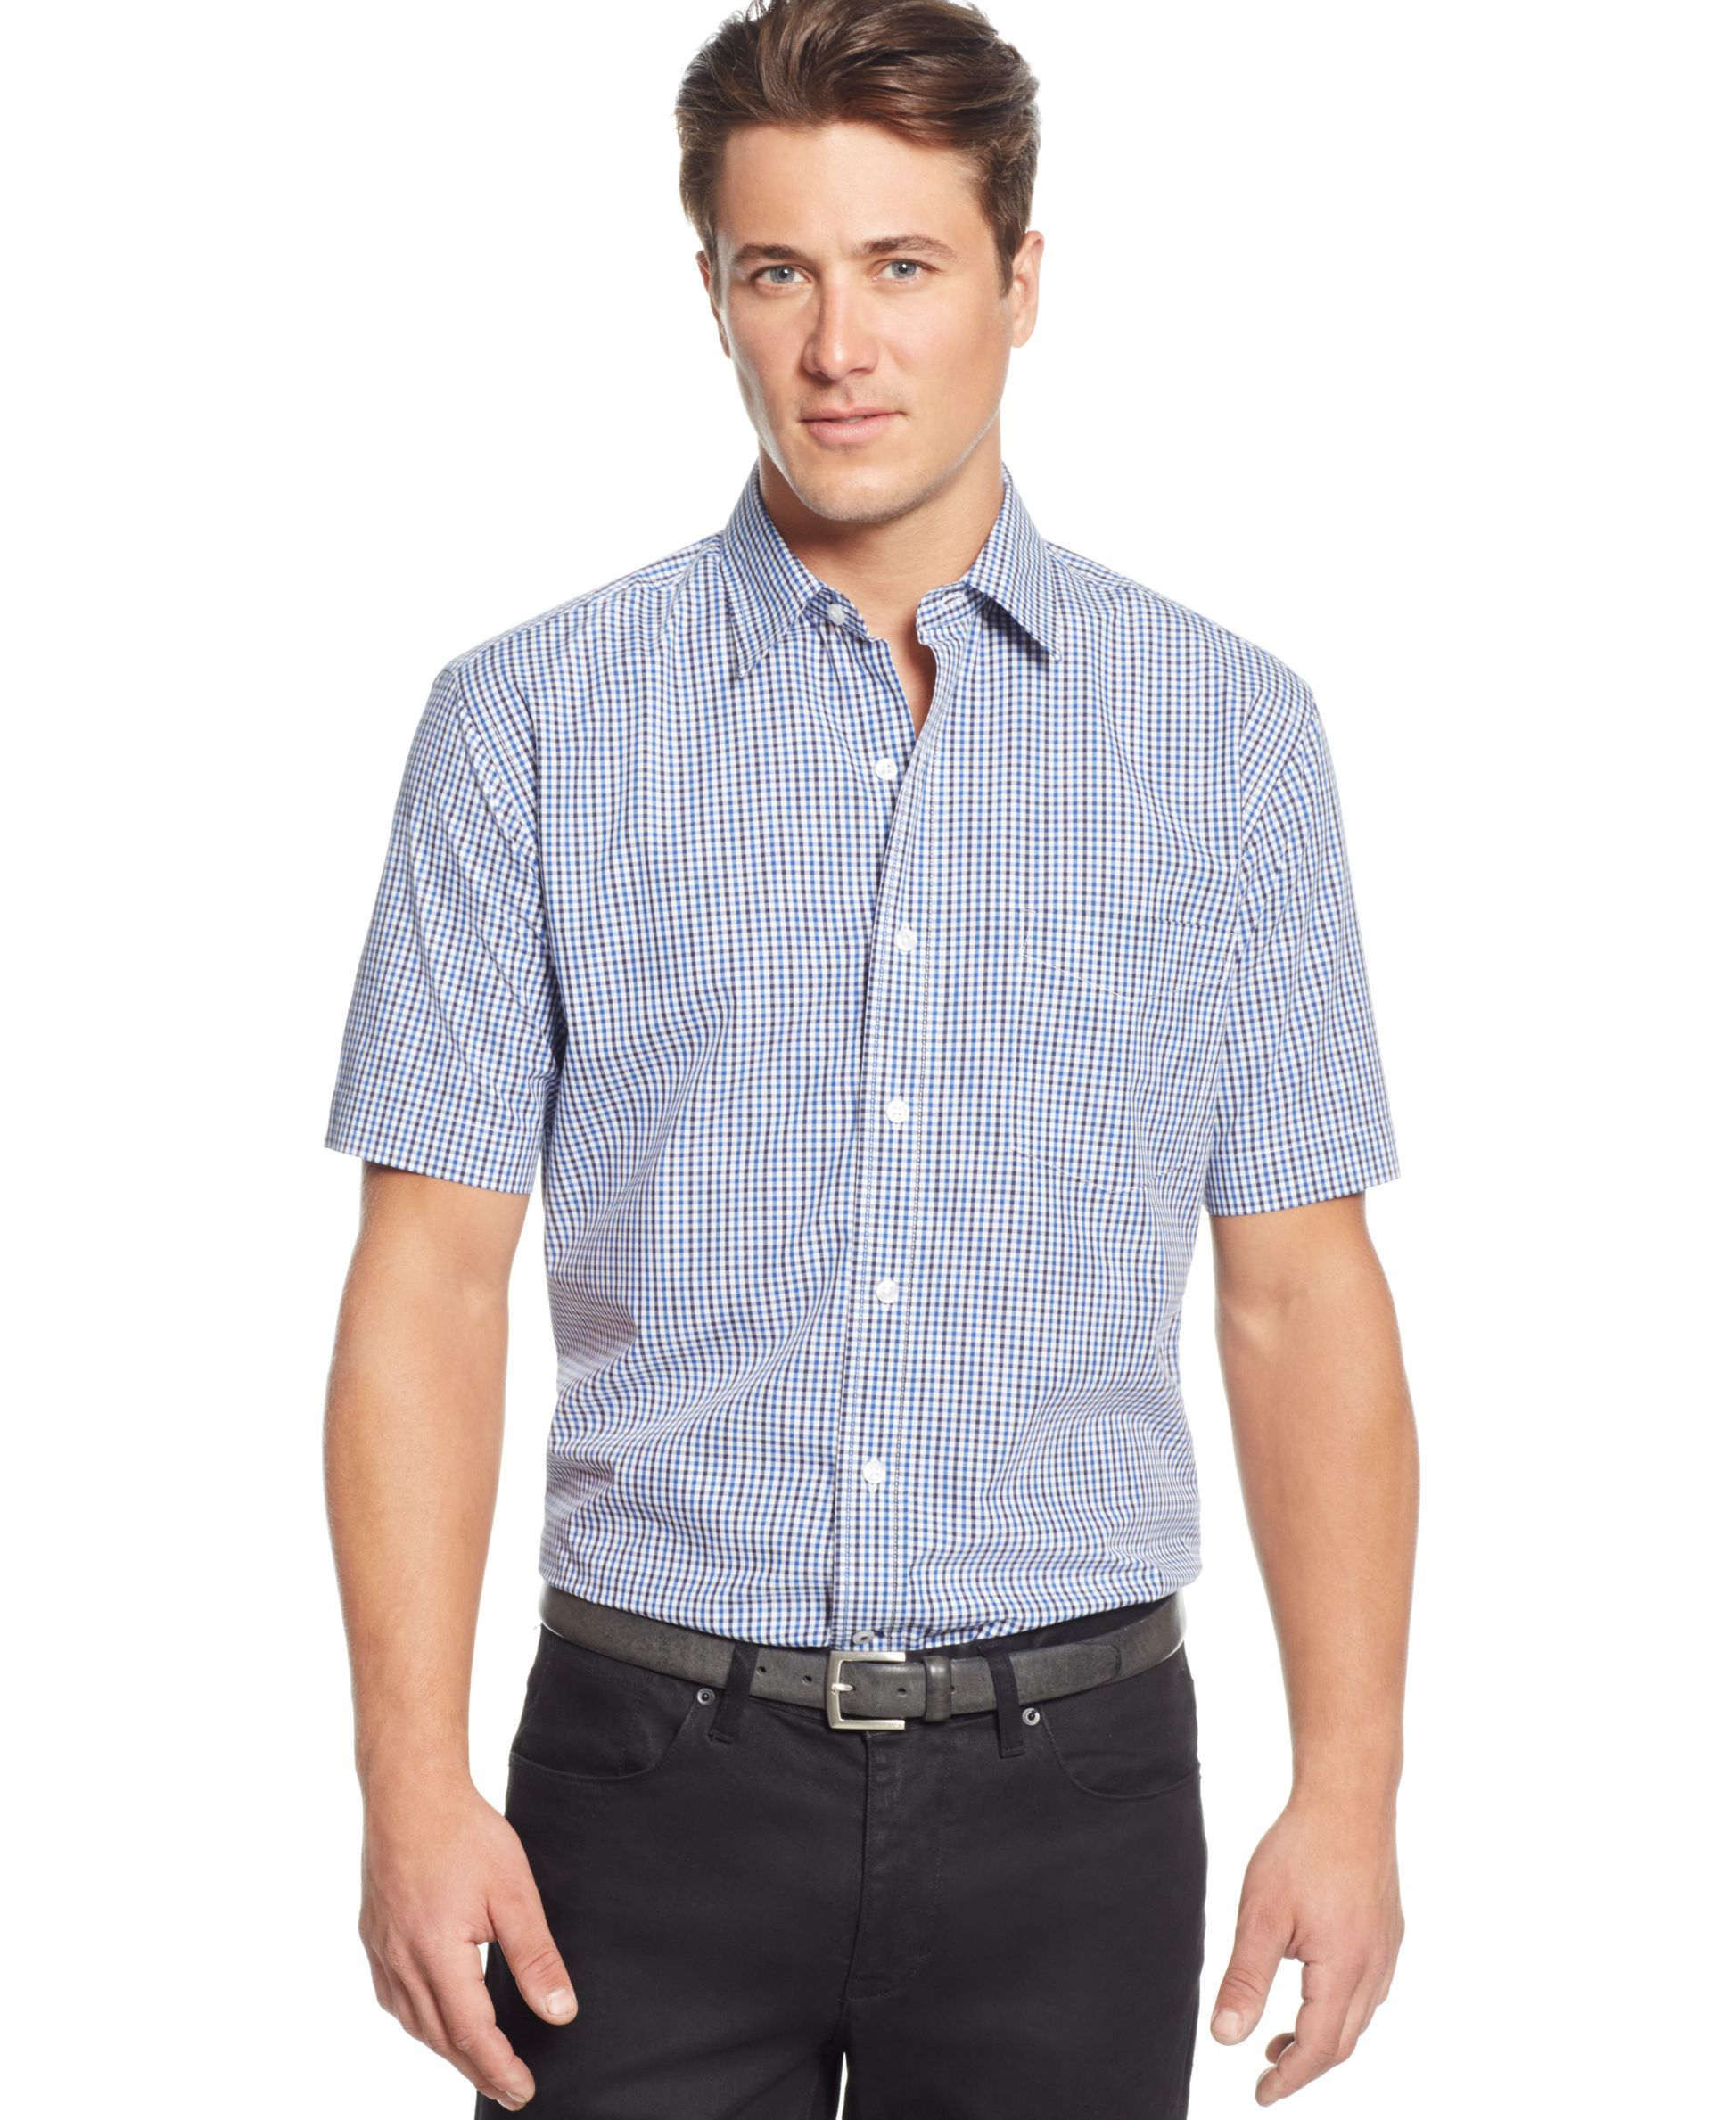 Club Room Big And Tall Gingham Short Sleeve Shirt Only At Macys Products Pinterest Shirt